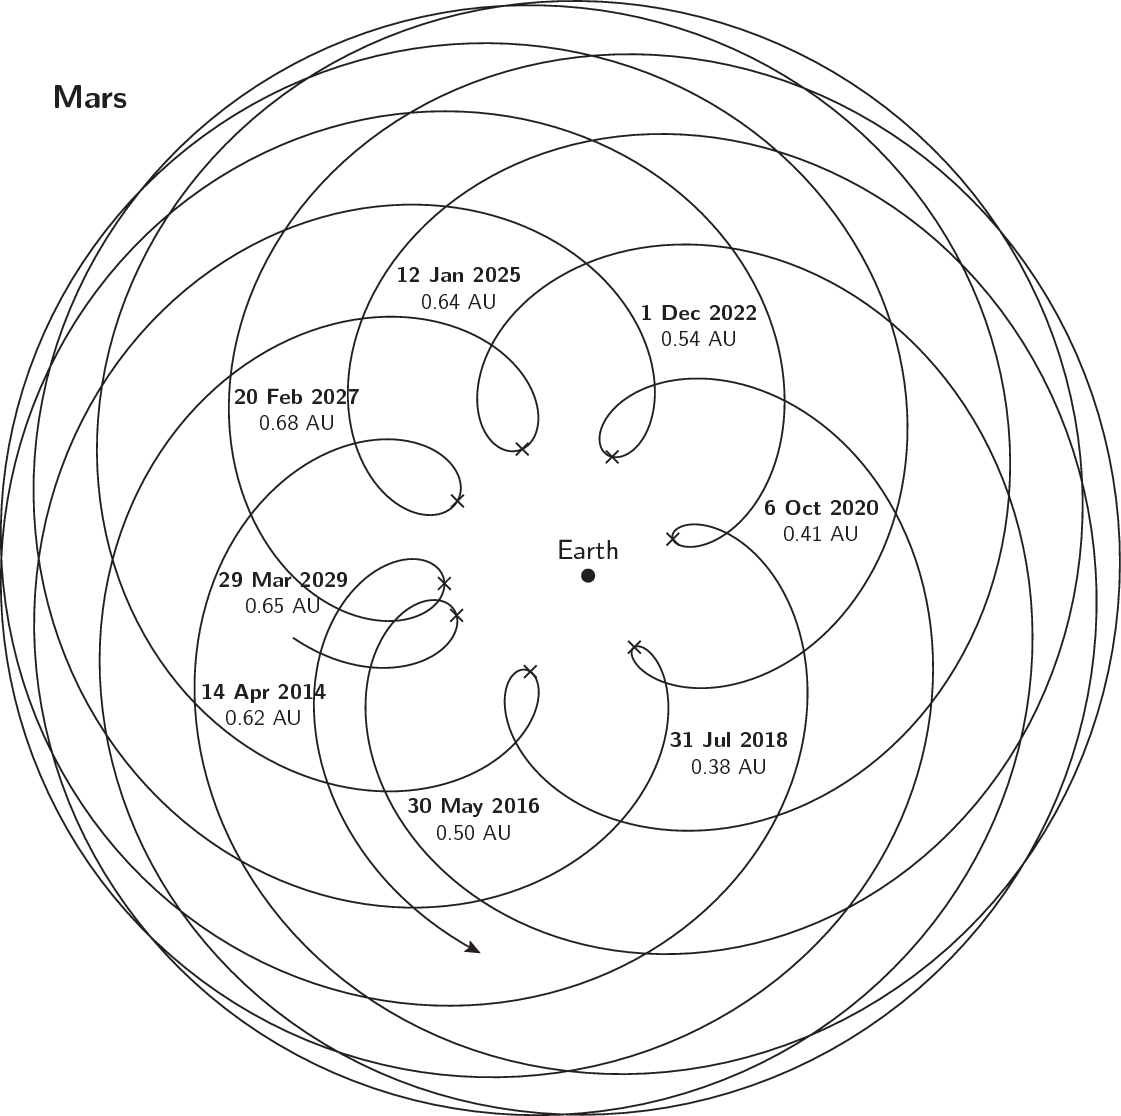 Orbit of Mars